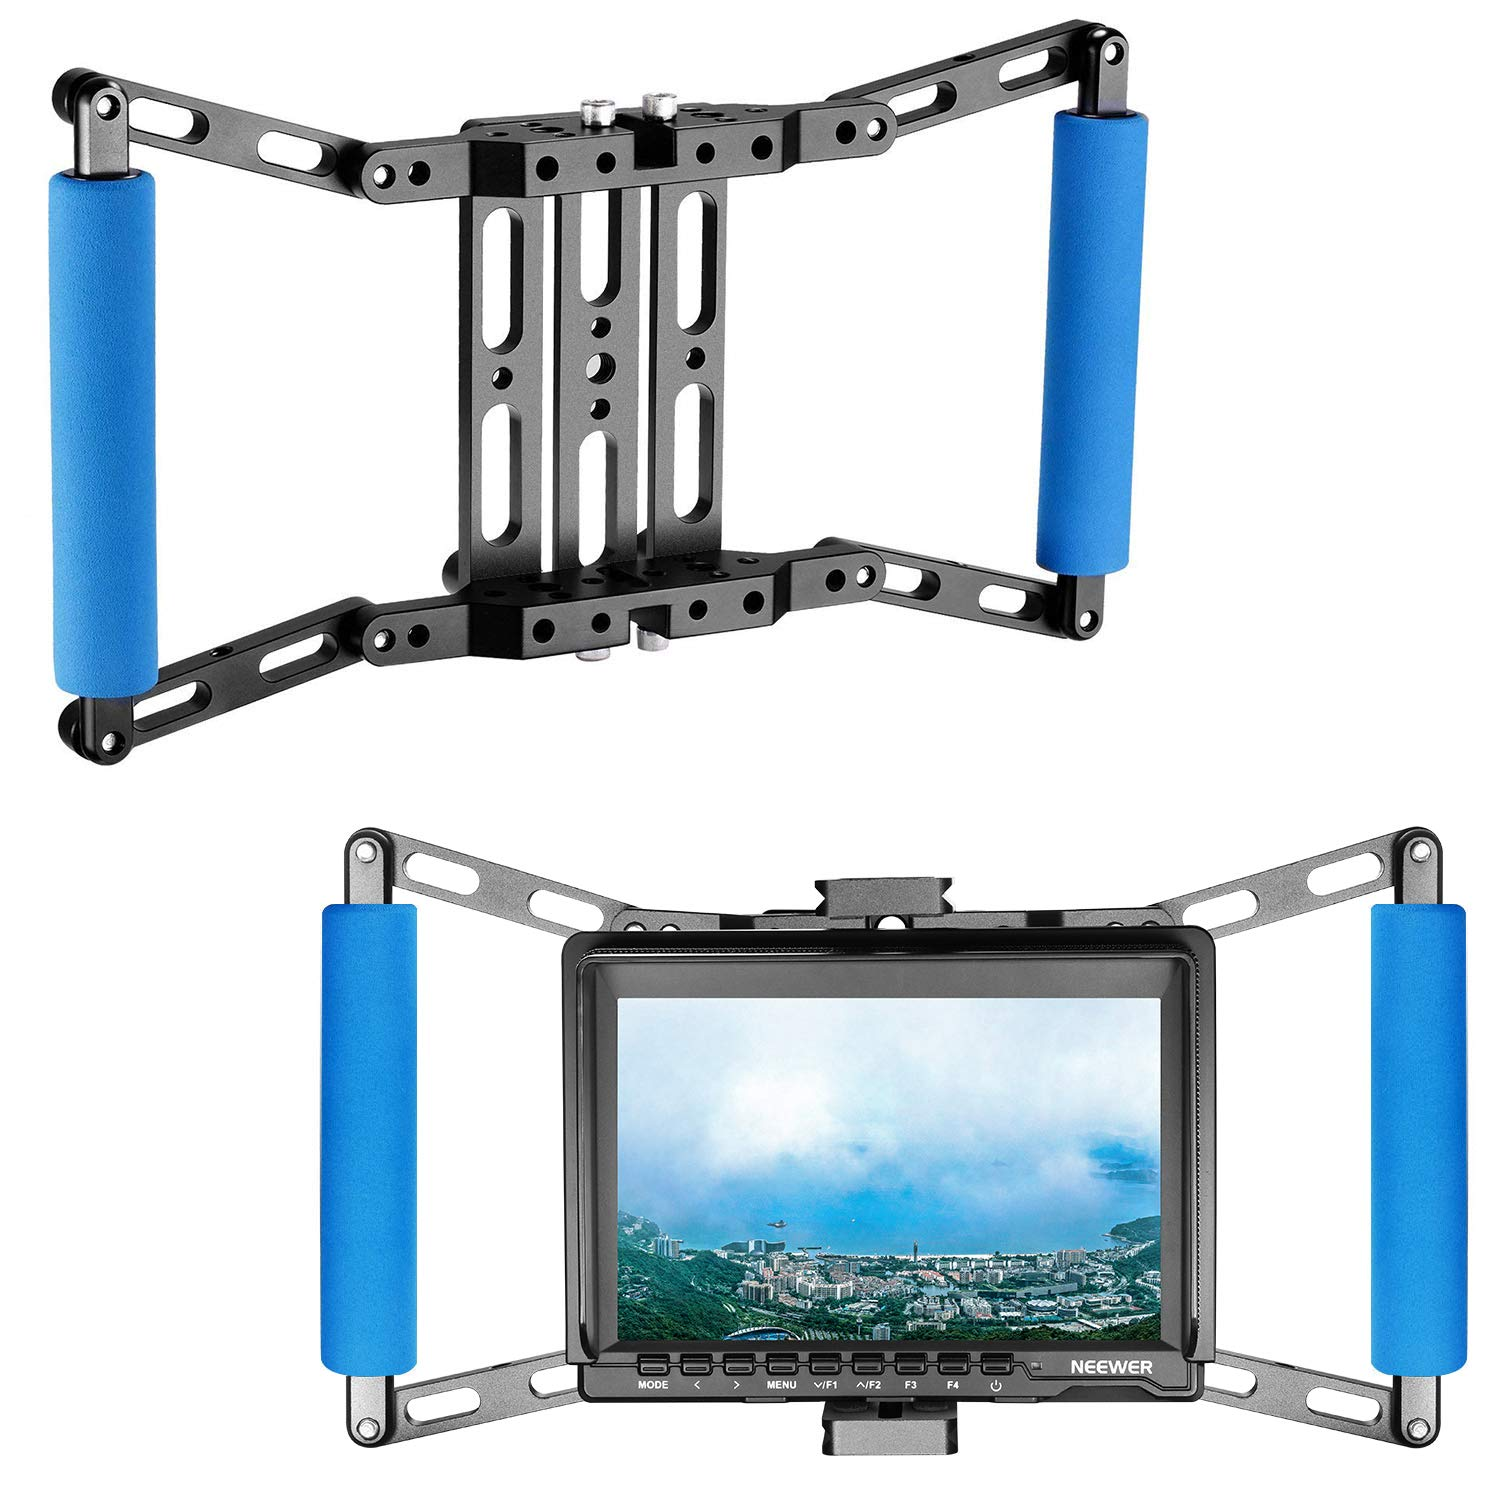 Neewer Director's Monitor Cage for 4 inch/5 inch/7 inch Camera Field Monitor, Includes Neewer NW759/74K/760 Feelworld FW759/759P/760/74K Aputure Lilliput Blackmagic Atomos Pangshi Ikan and More(Blue) 10090565